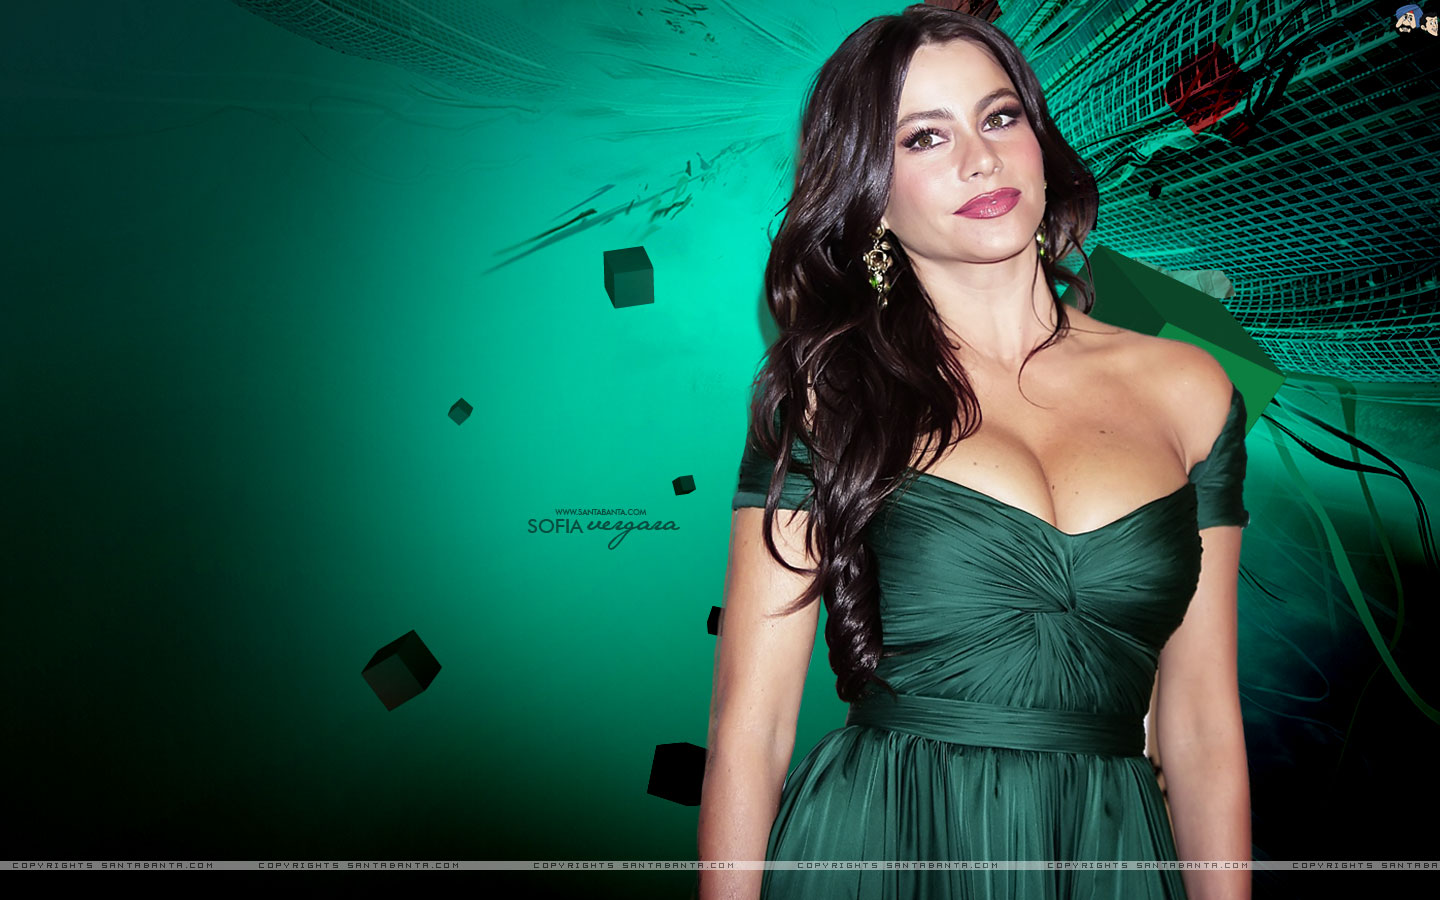 HD Wallpapers Sofia Vergara high quality and definition 1440x900